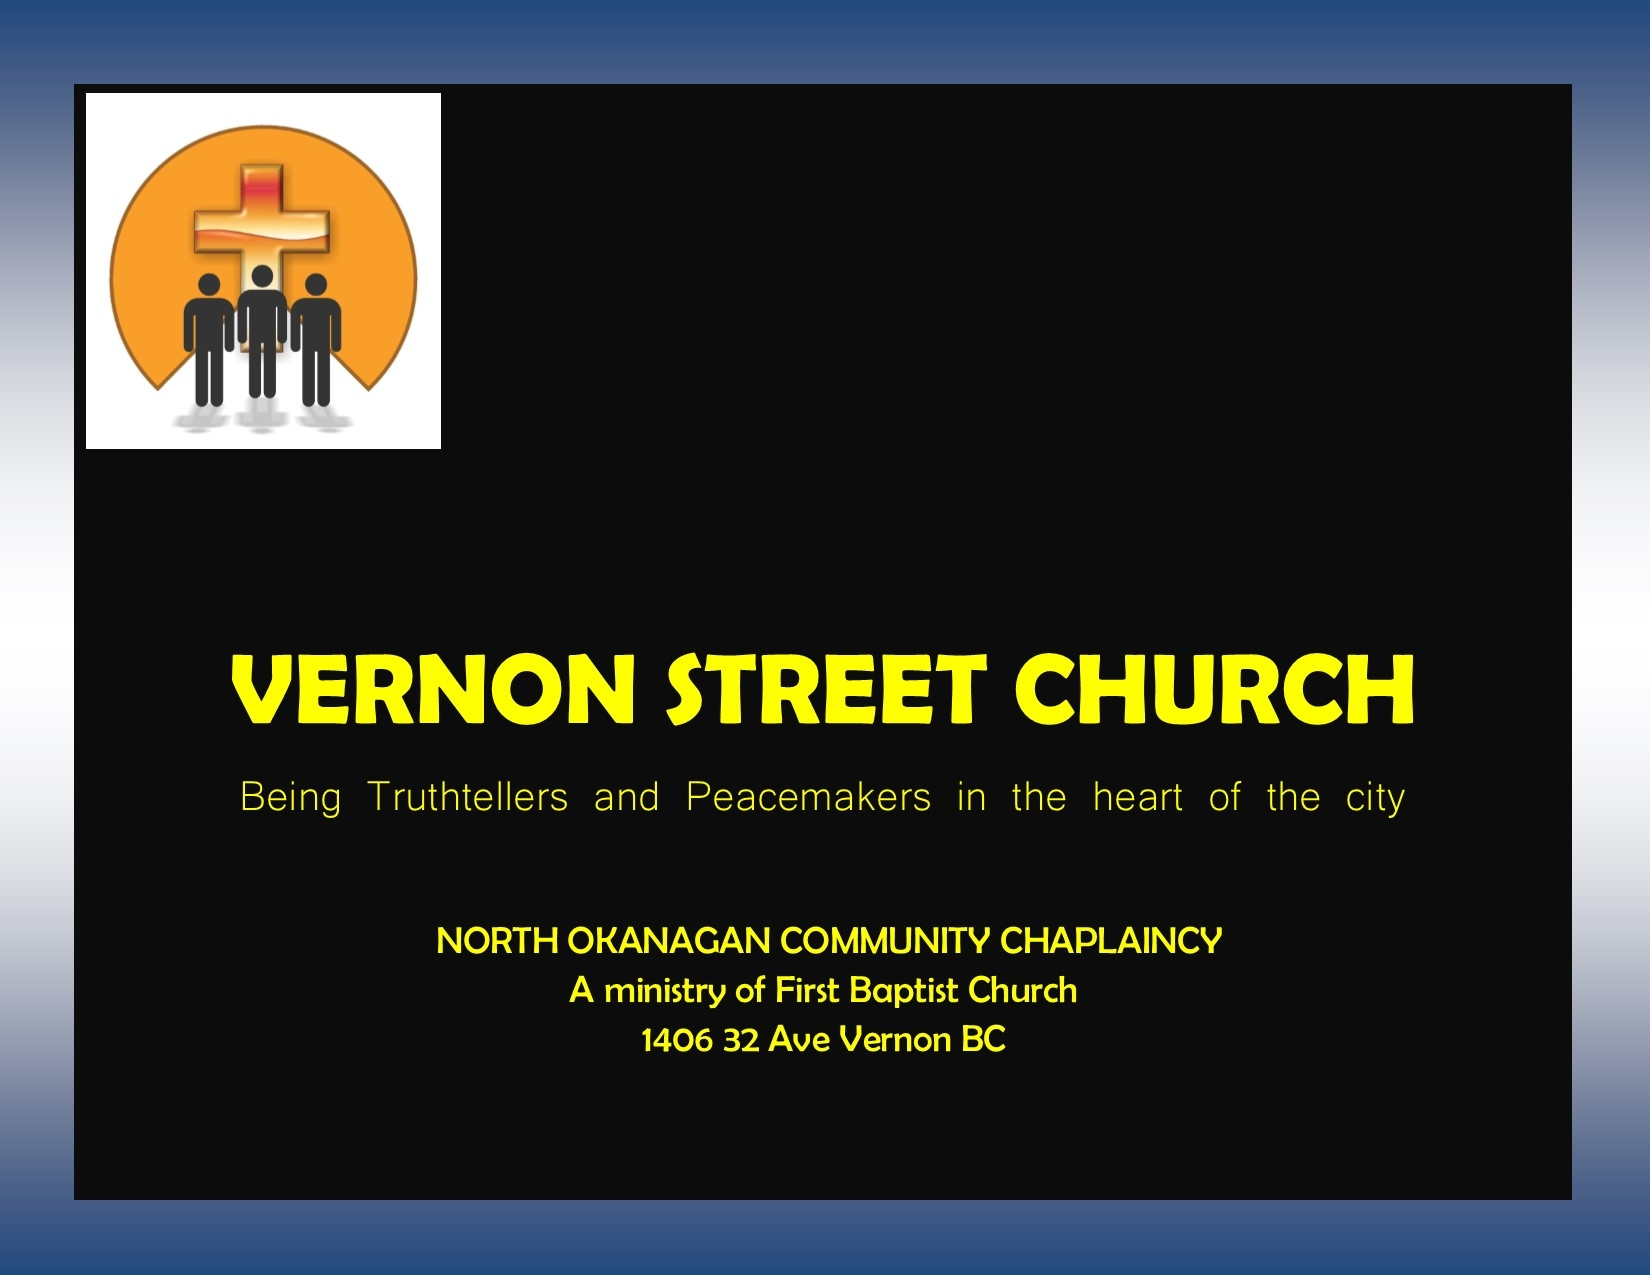 Vernon Street Church  In January 2016 the chaplaincy began a new area of ministry. As Chuck continued to see gaps he saw a need for spiritual care in a different setting, and physical care as well. There was also no regular food service for the marginalized of our community and, combining these two needs, Street Church was formed. Working with a number of like minded friends we began serving food and worshiping one Sunday a month at the Mission. We then moved into the Salvation Army's House of Hope. We are now looking at having street church twice monthly as the need continues. Please follow our Street Church page on Facebook or here on our website for updates and special events.  Each Sunday we have Tailgate Street Church in the parking lot of the Upper Room Mission.  On the Sunday before wellfare cheques come out we have a full meal and service at 1pm at House of Hope (Salvation Army) - usually the 3rd Sunday of the month.